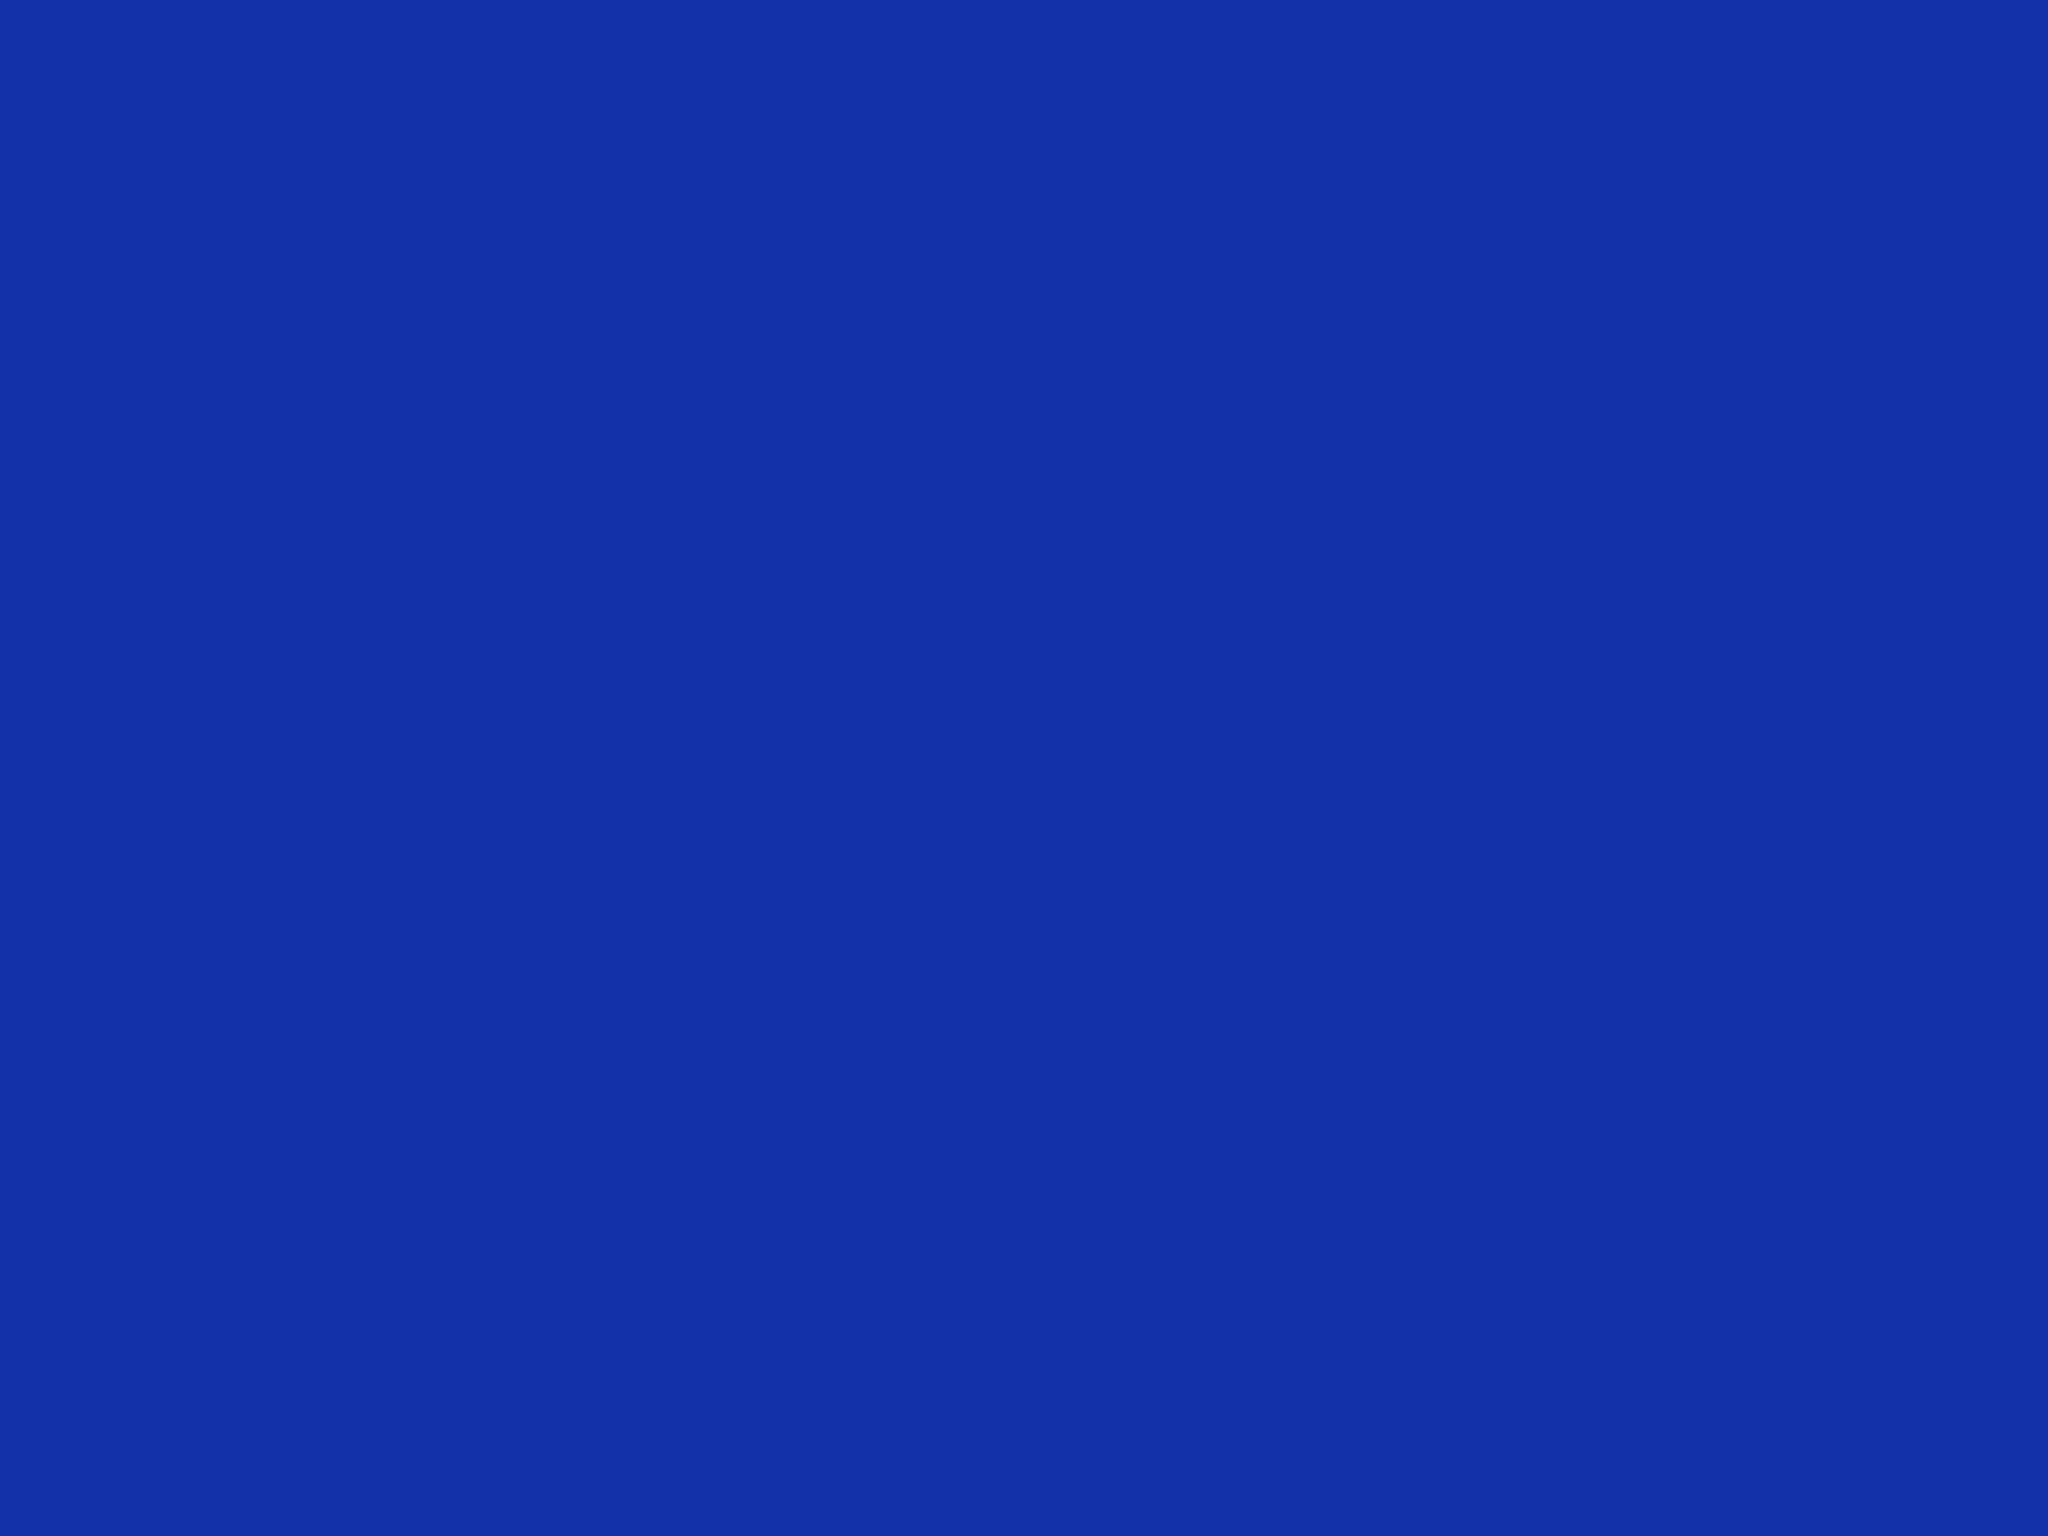 2048x1536 Egyptian Blue Solid Color Background